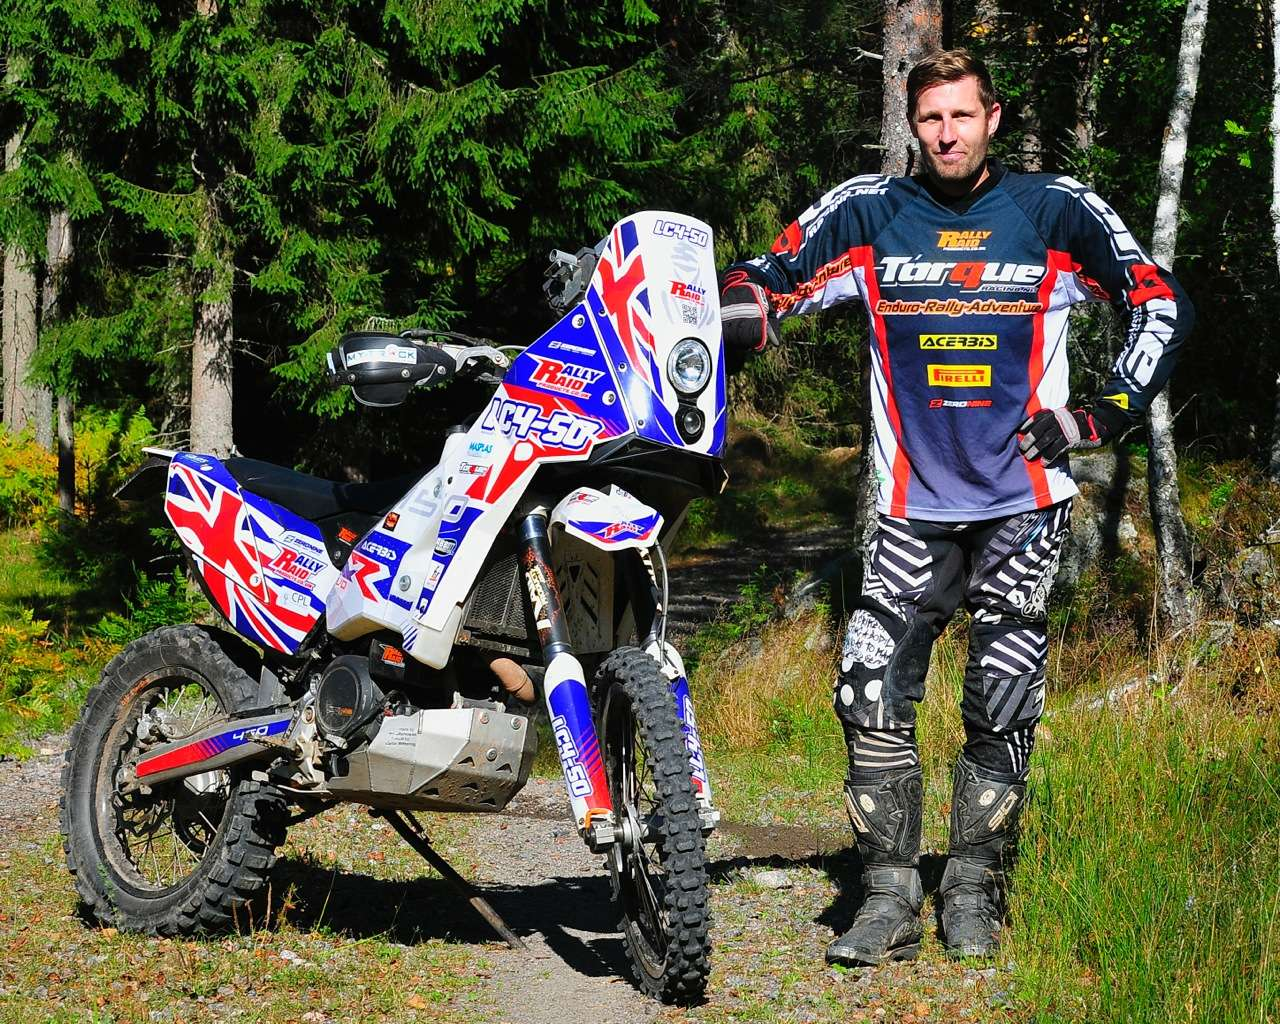 Dakar-rally-LC4-50-and-rider-Carl-Hagenblad